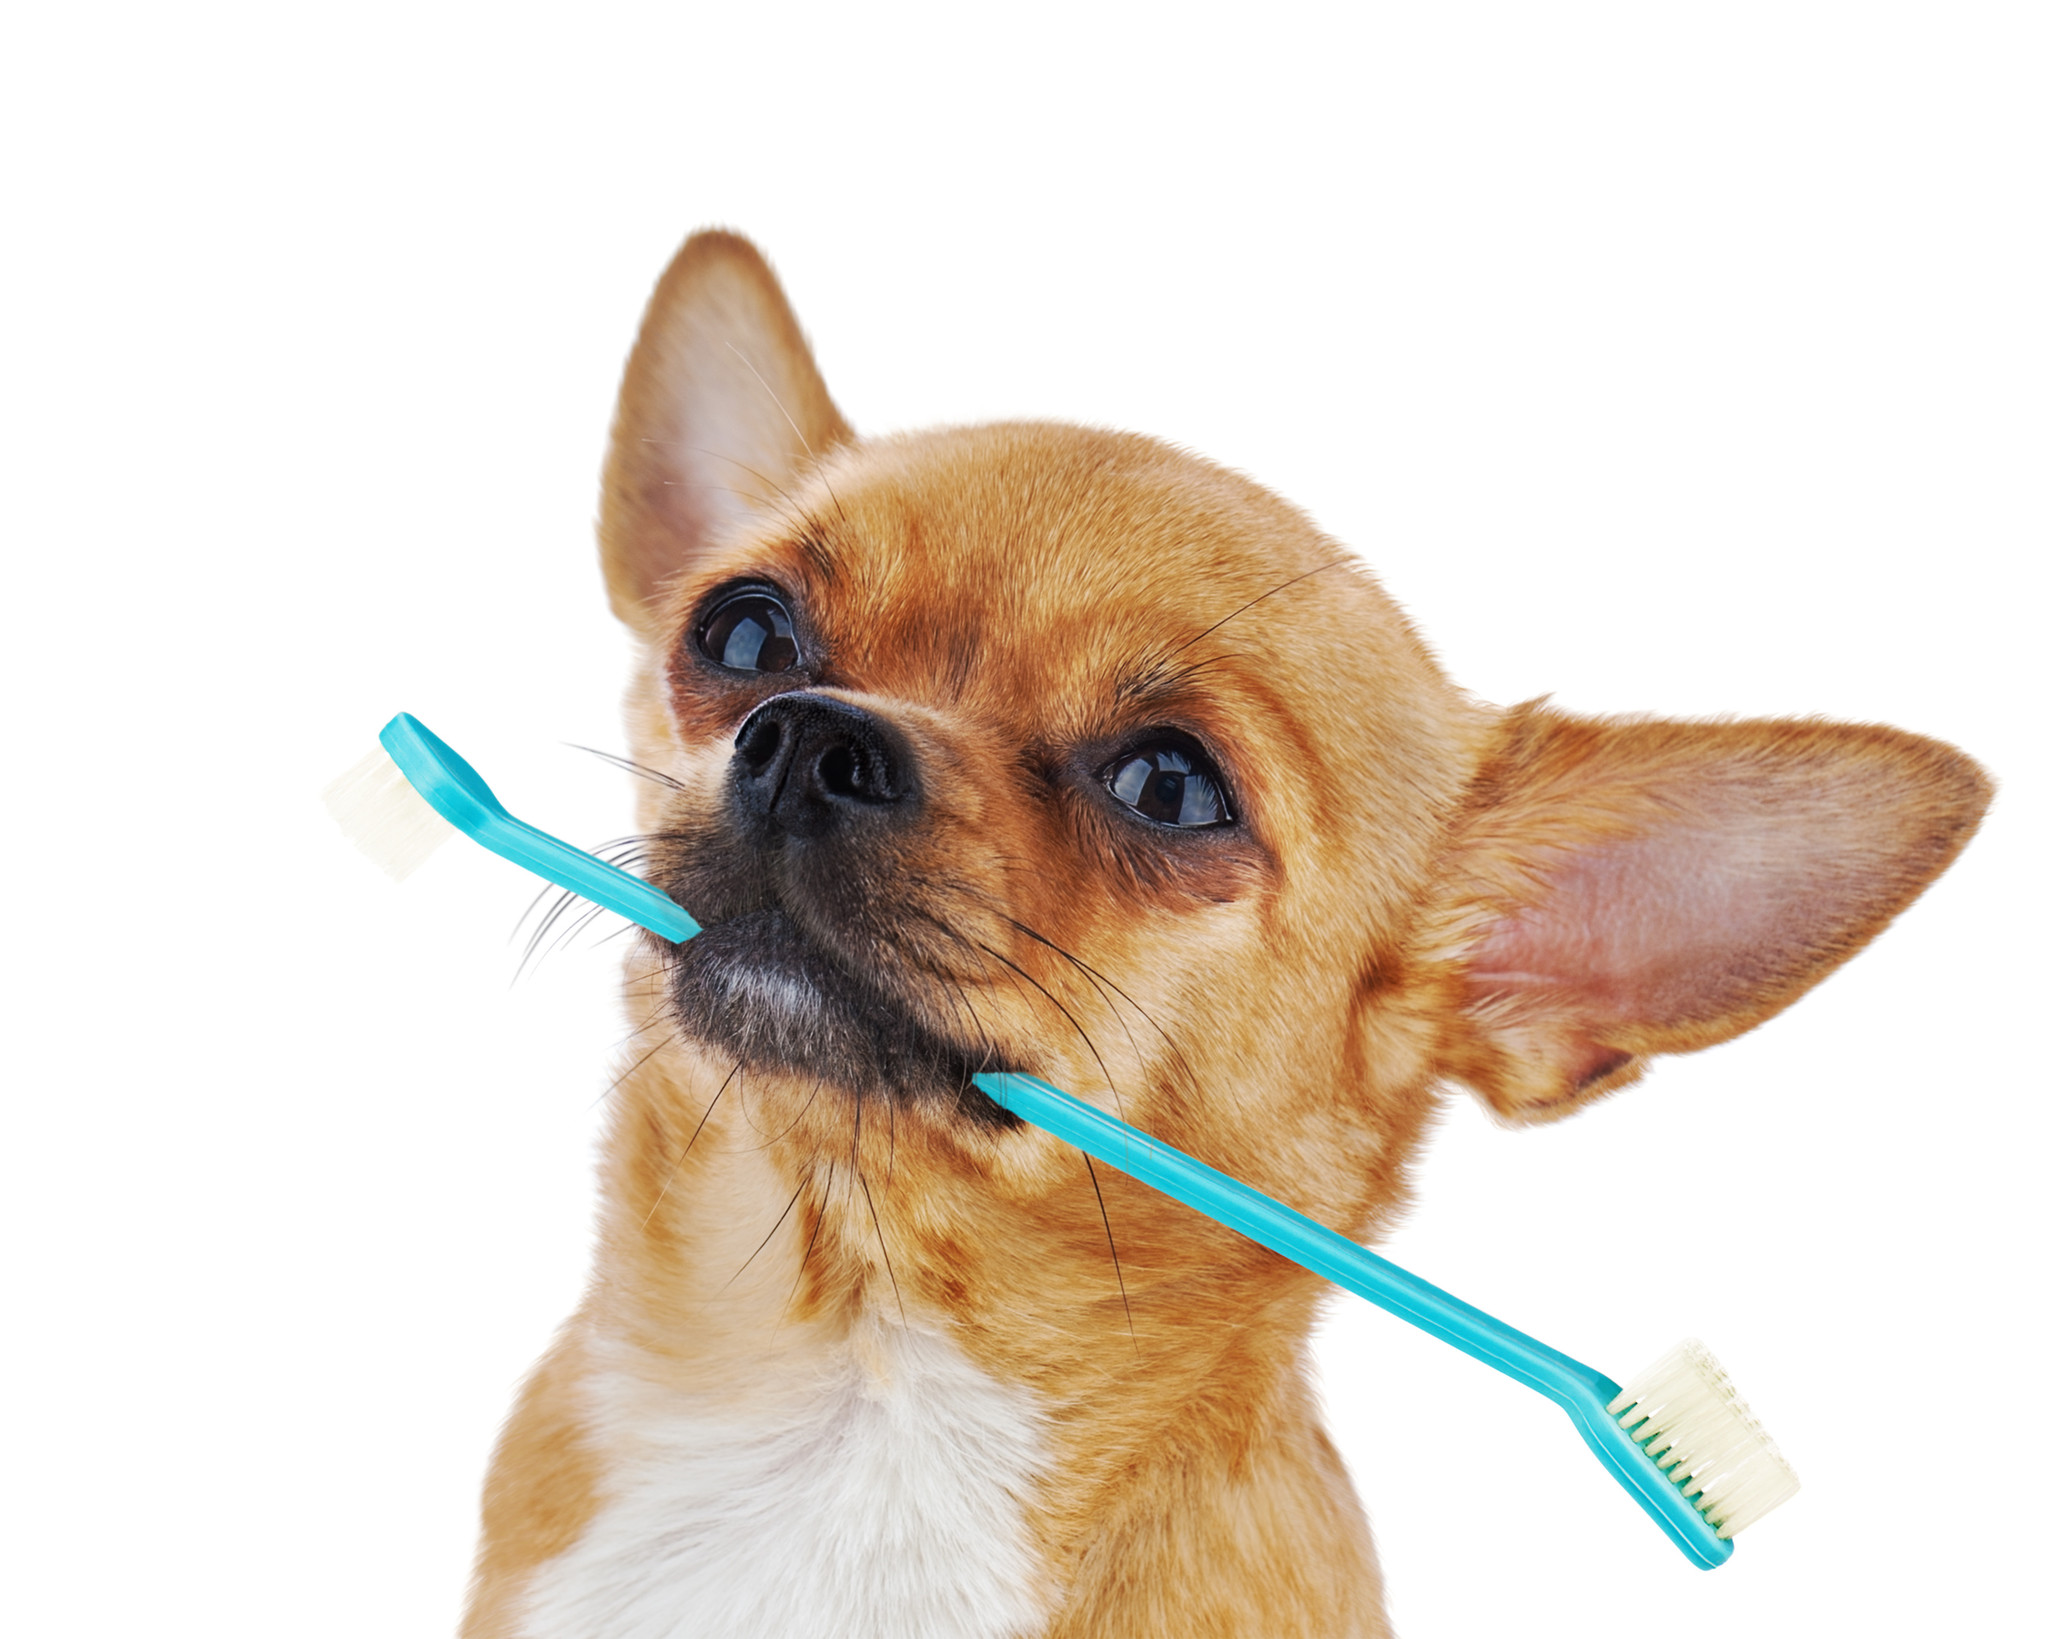 5 ways to take care of your dog's oral health